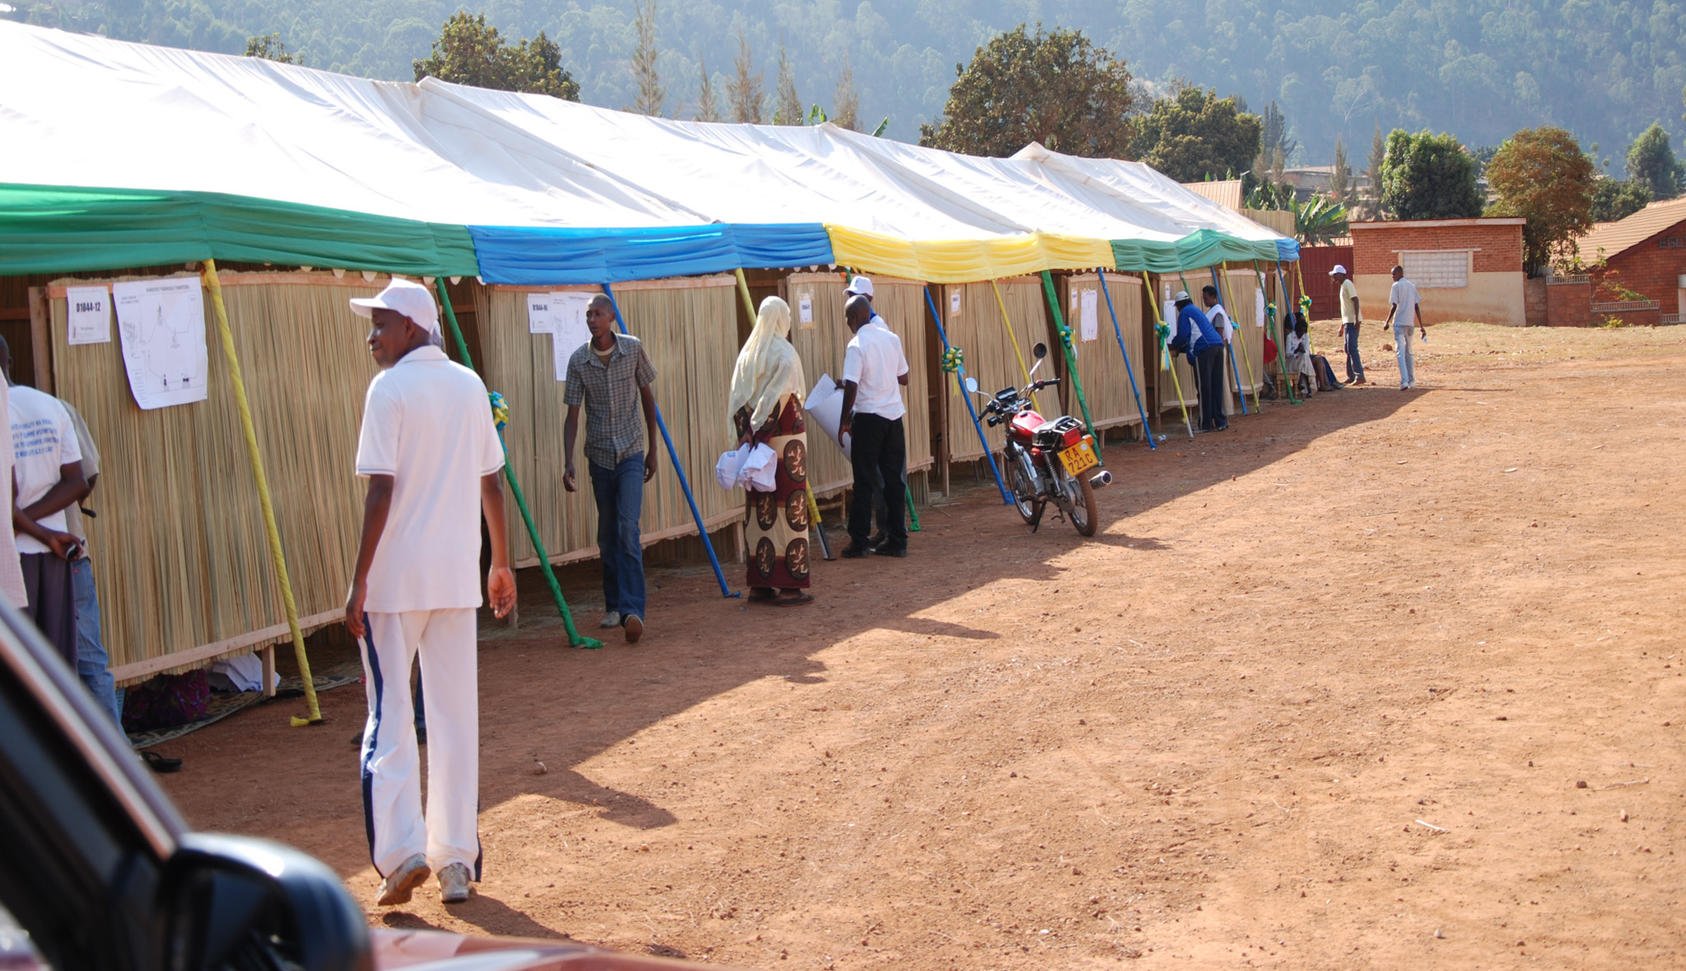 A makeshift polling station for Rwanda's presidential elections in the capital Kigali. 2010